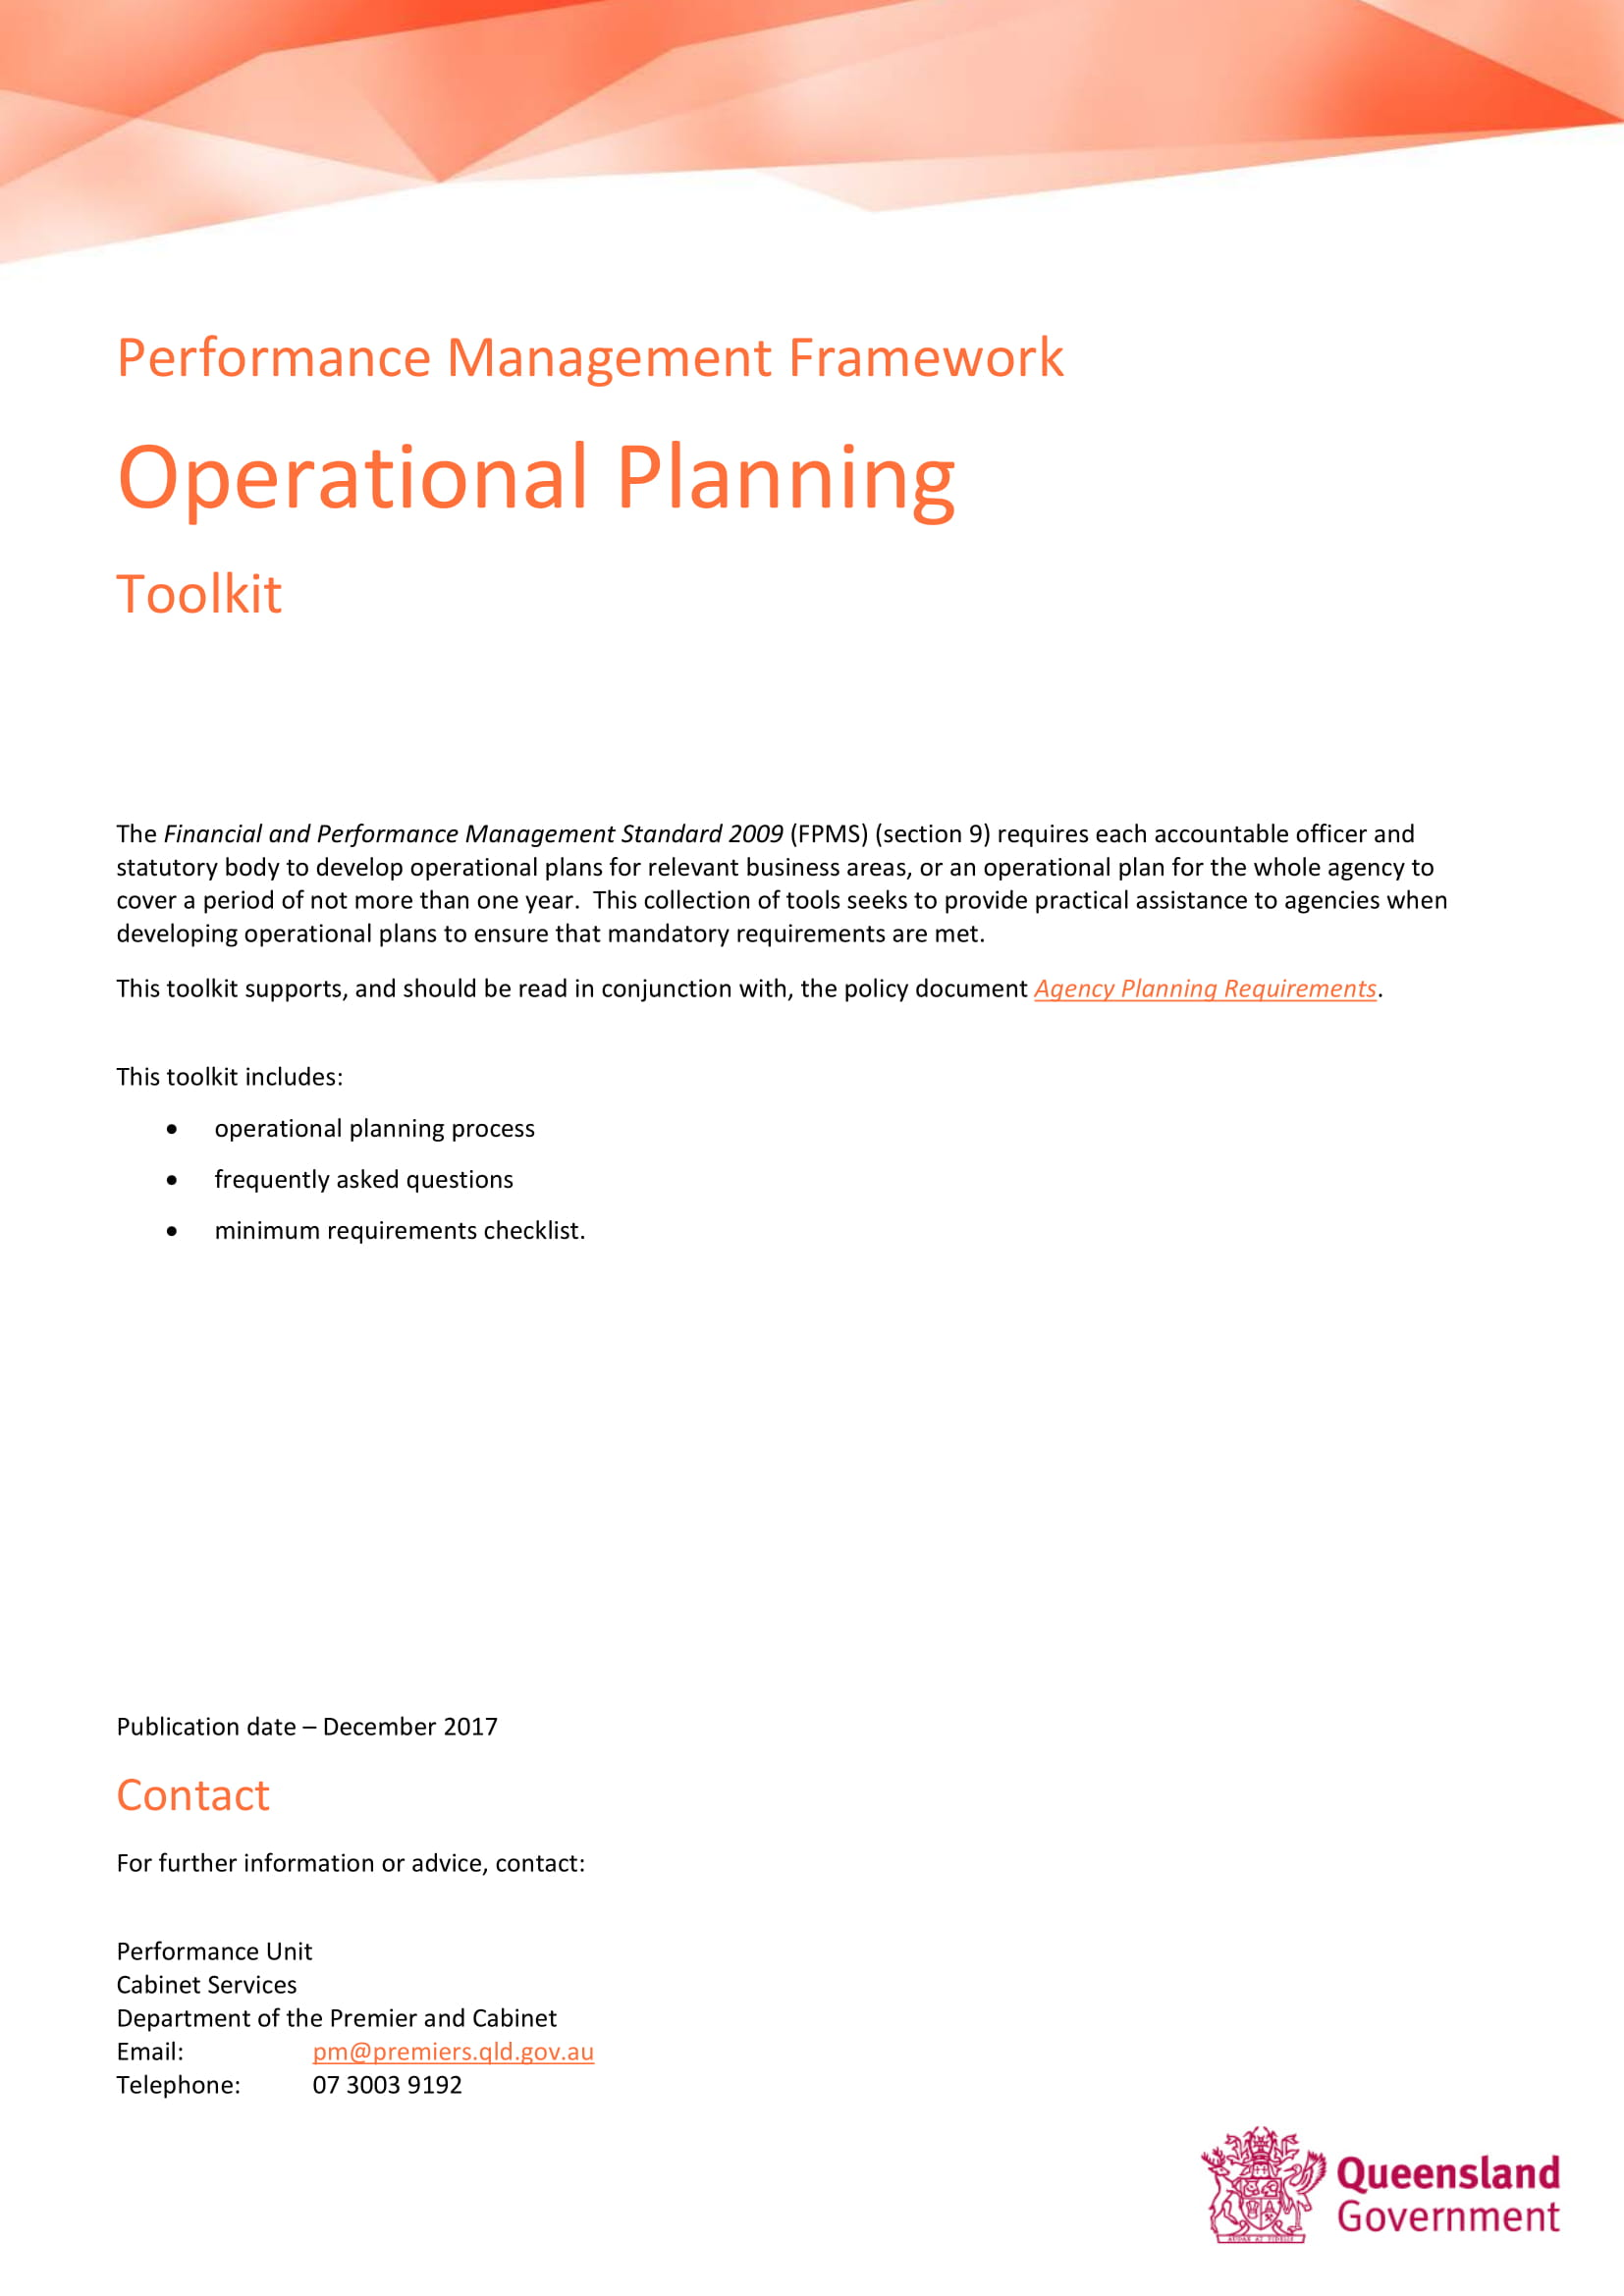 business performance management framework and operational planning toolkit example 1